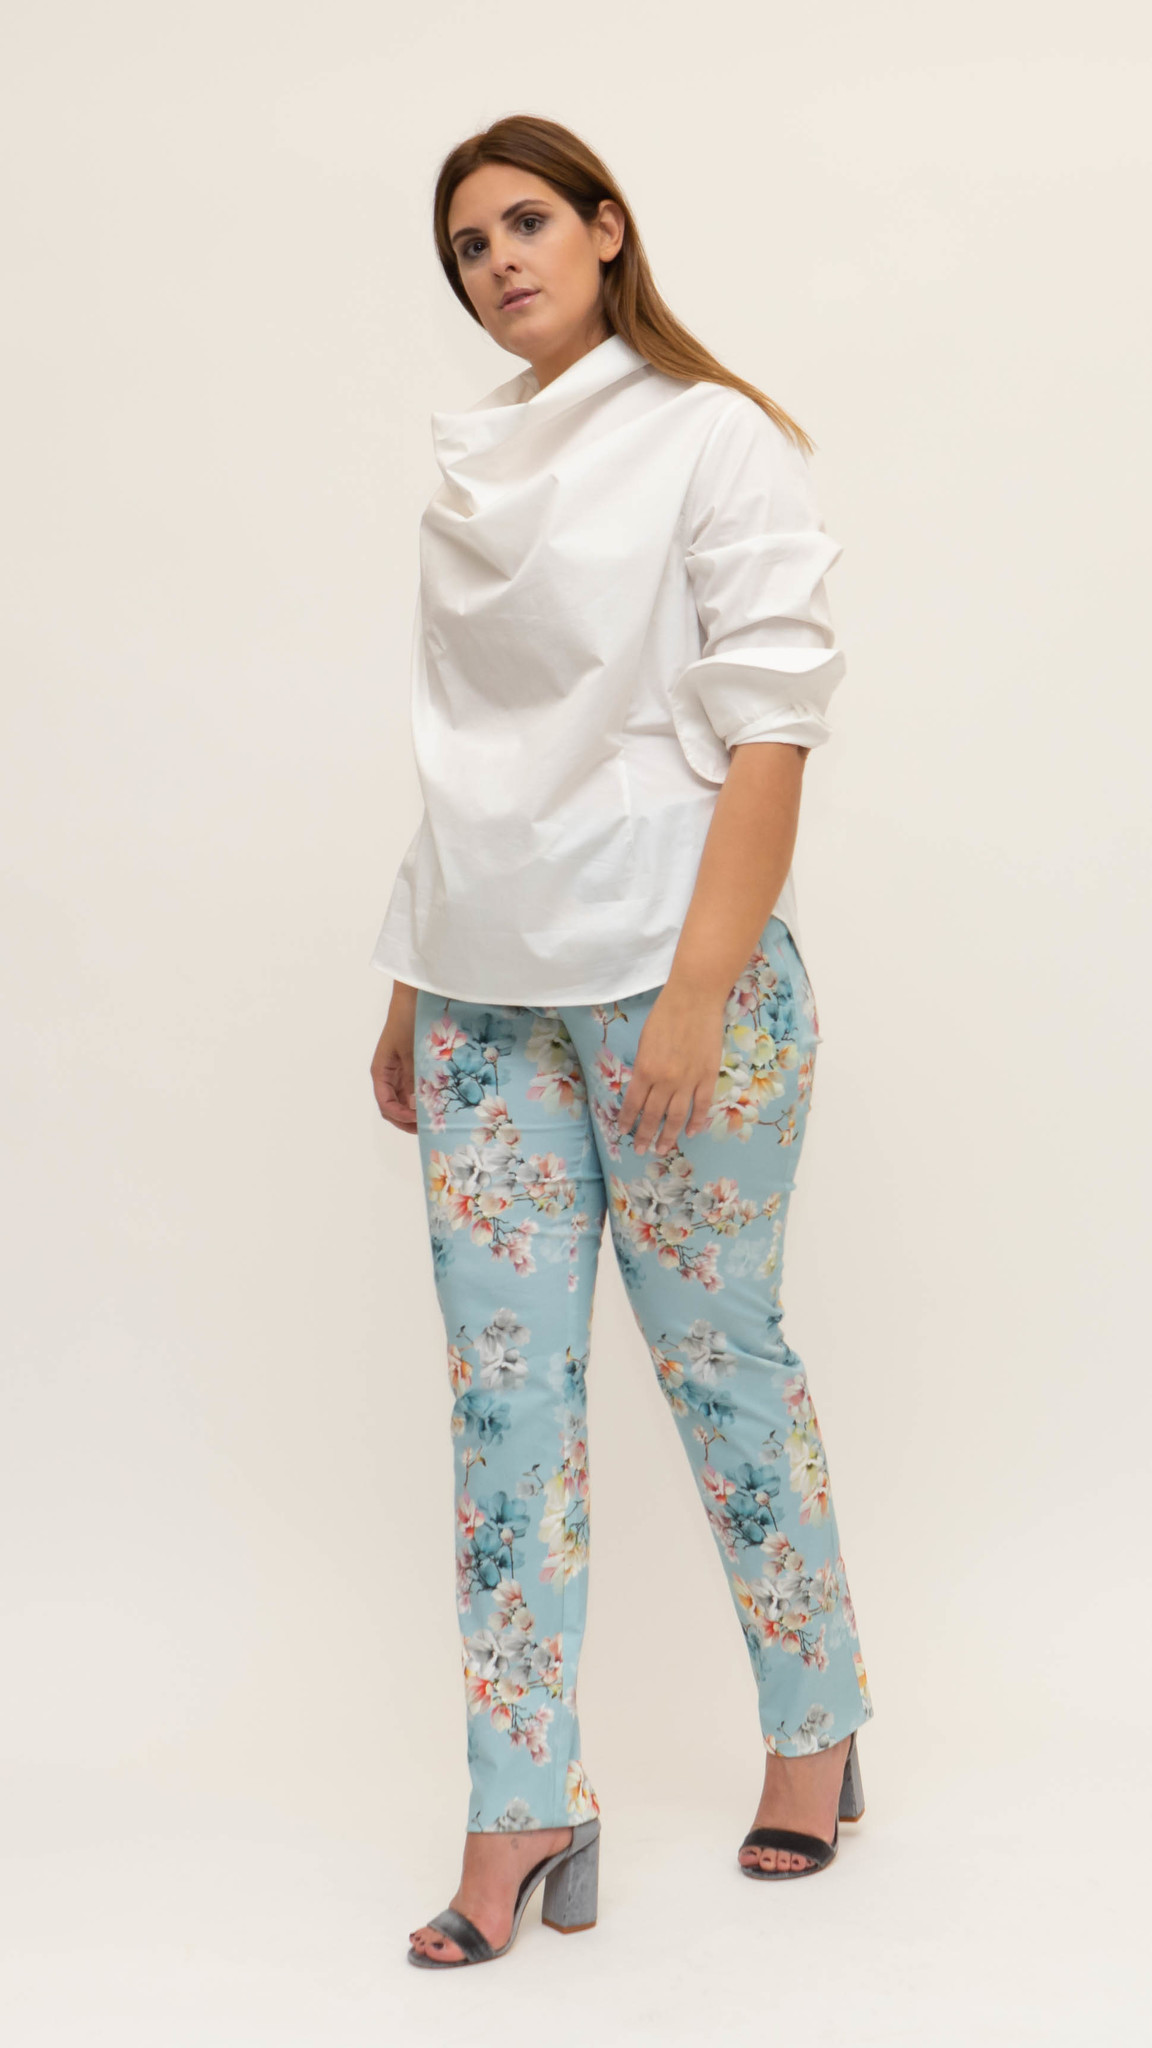 MAG Trouser in Cotton stretch-3